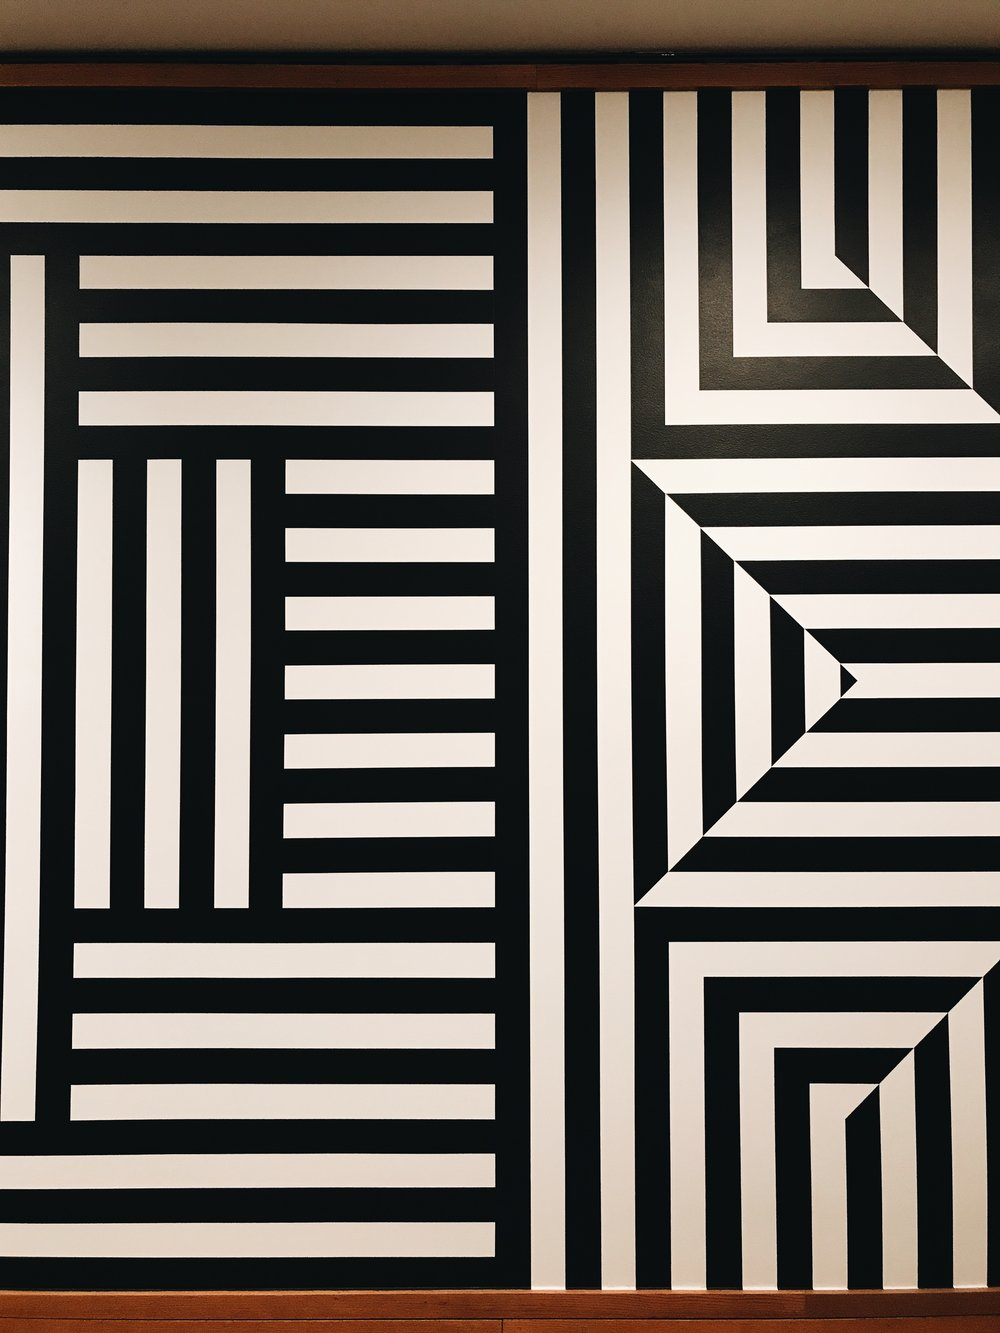 JUST SOME GOOD OLE BLACK AND WHITE OP ART IN THE MODERN AND CONTEMPORARY WING OF THE MET.